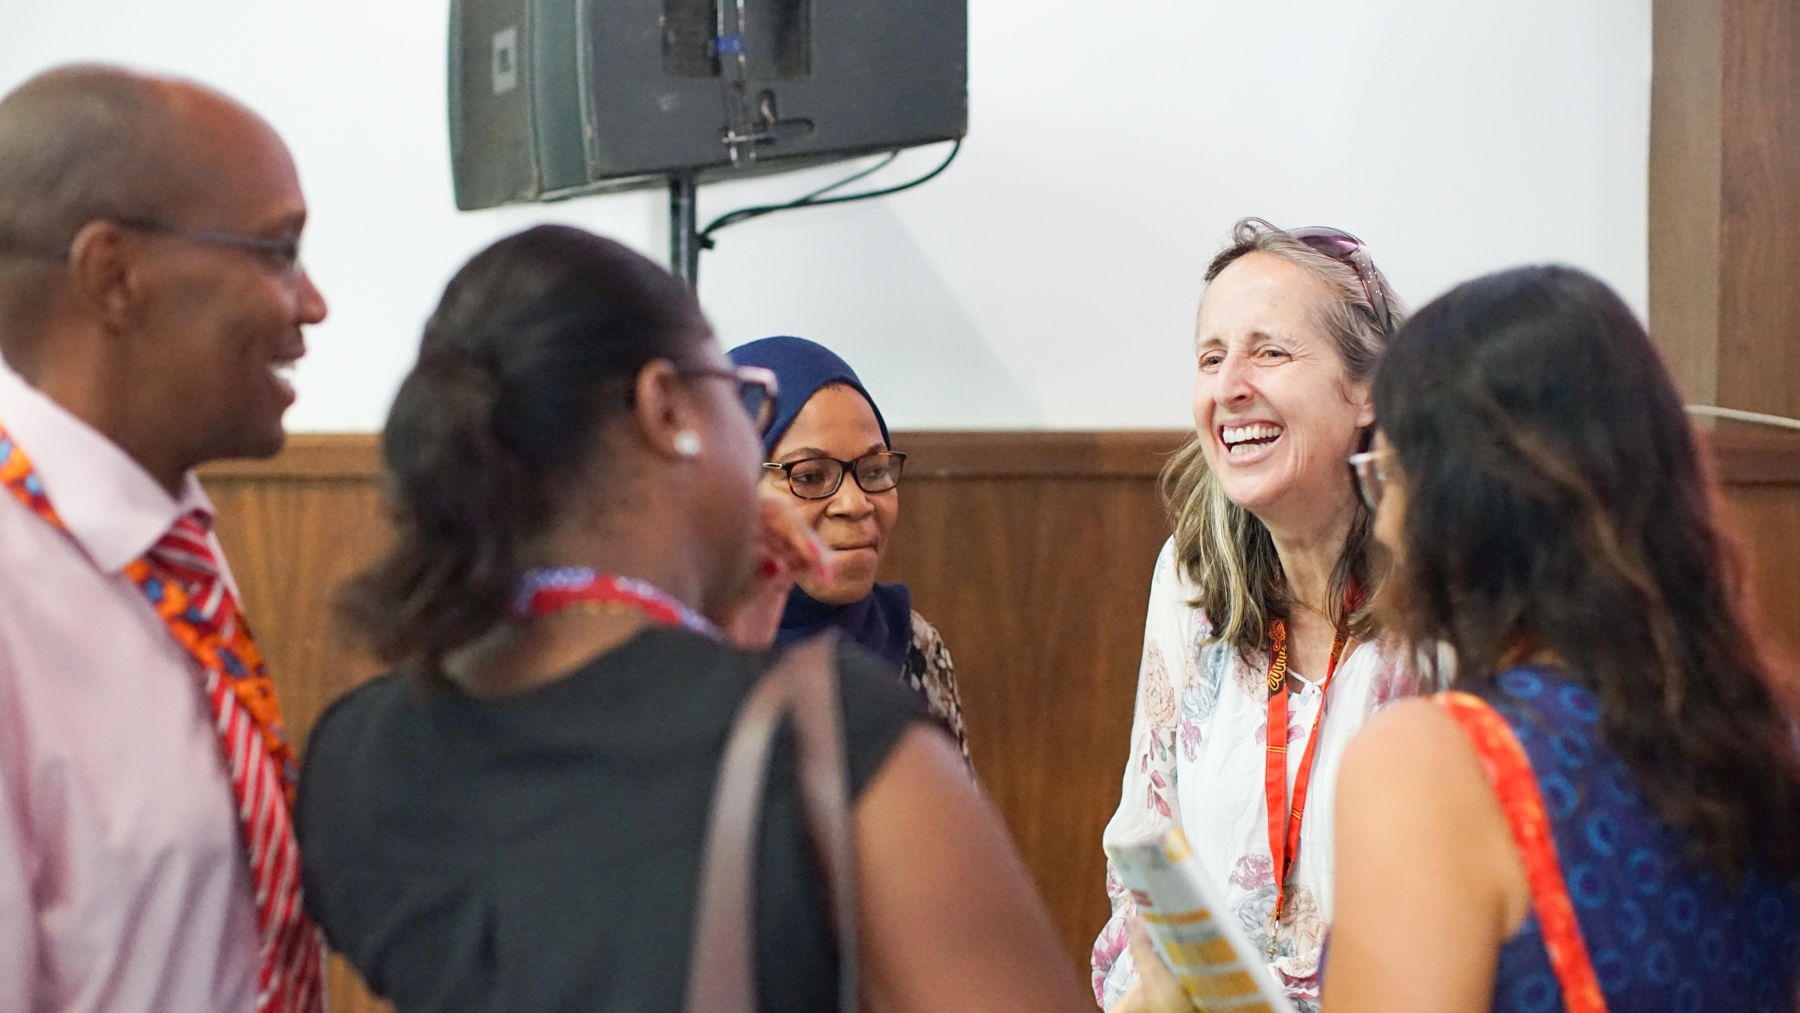 Dr. Trish Scanlan in conversation with panel audience members at the AORTIC conference in Maputo. (Noah Smith/ Direct Relief)